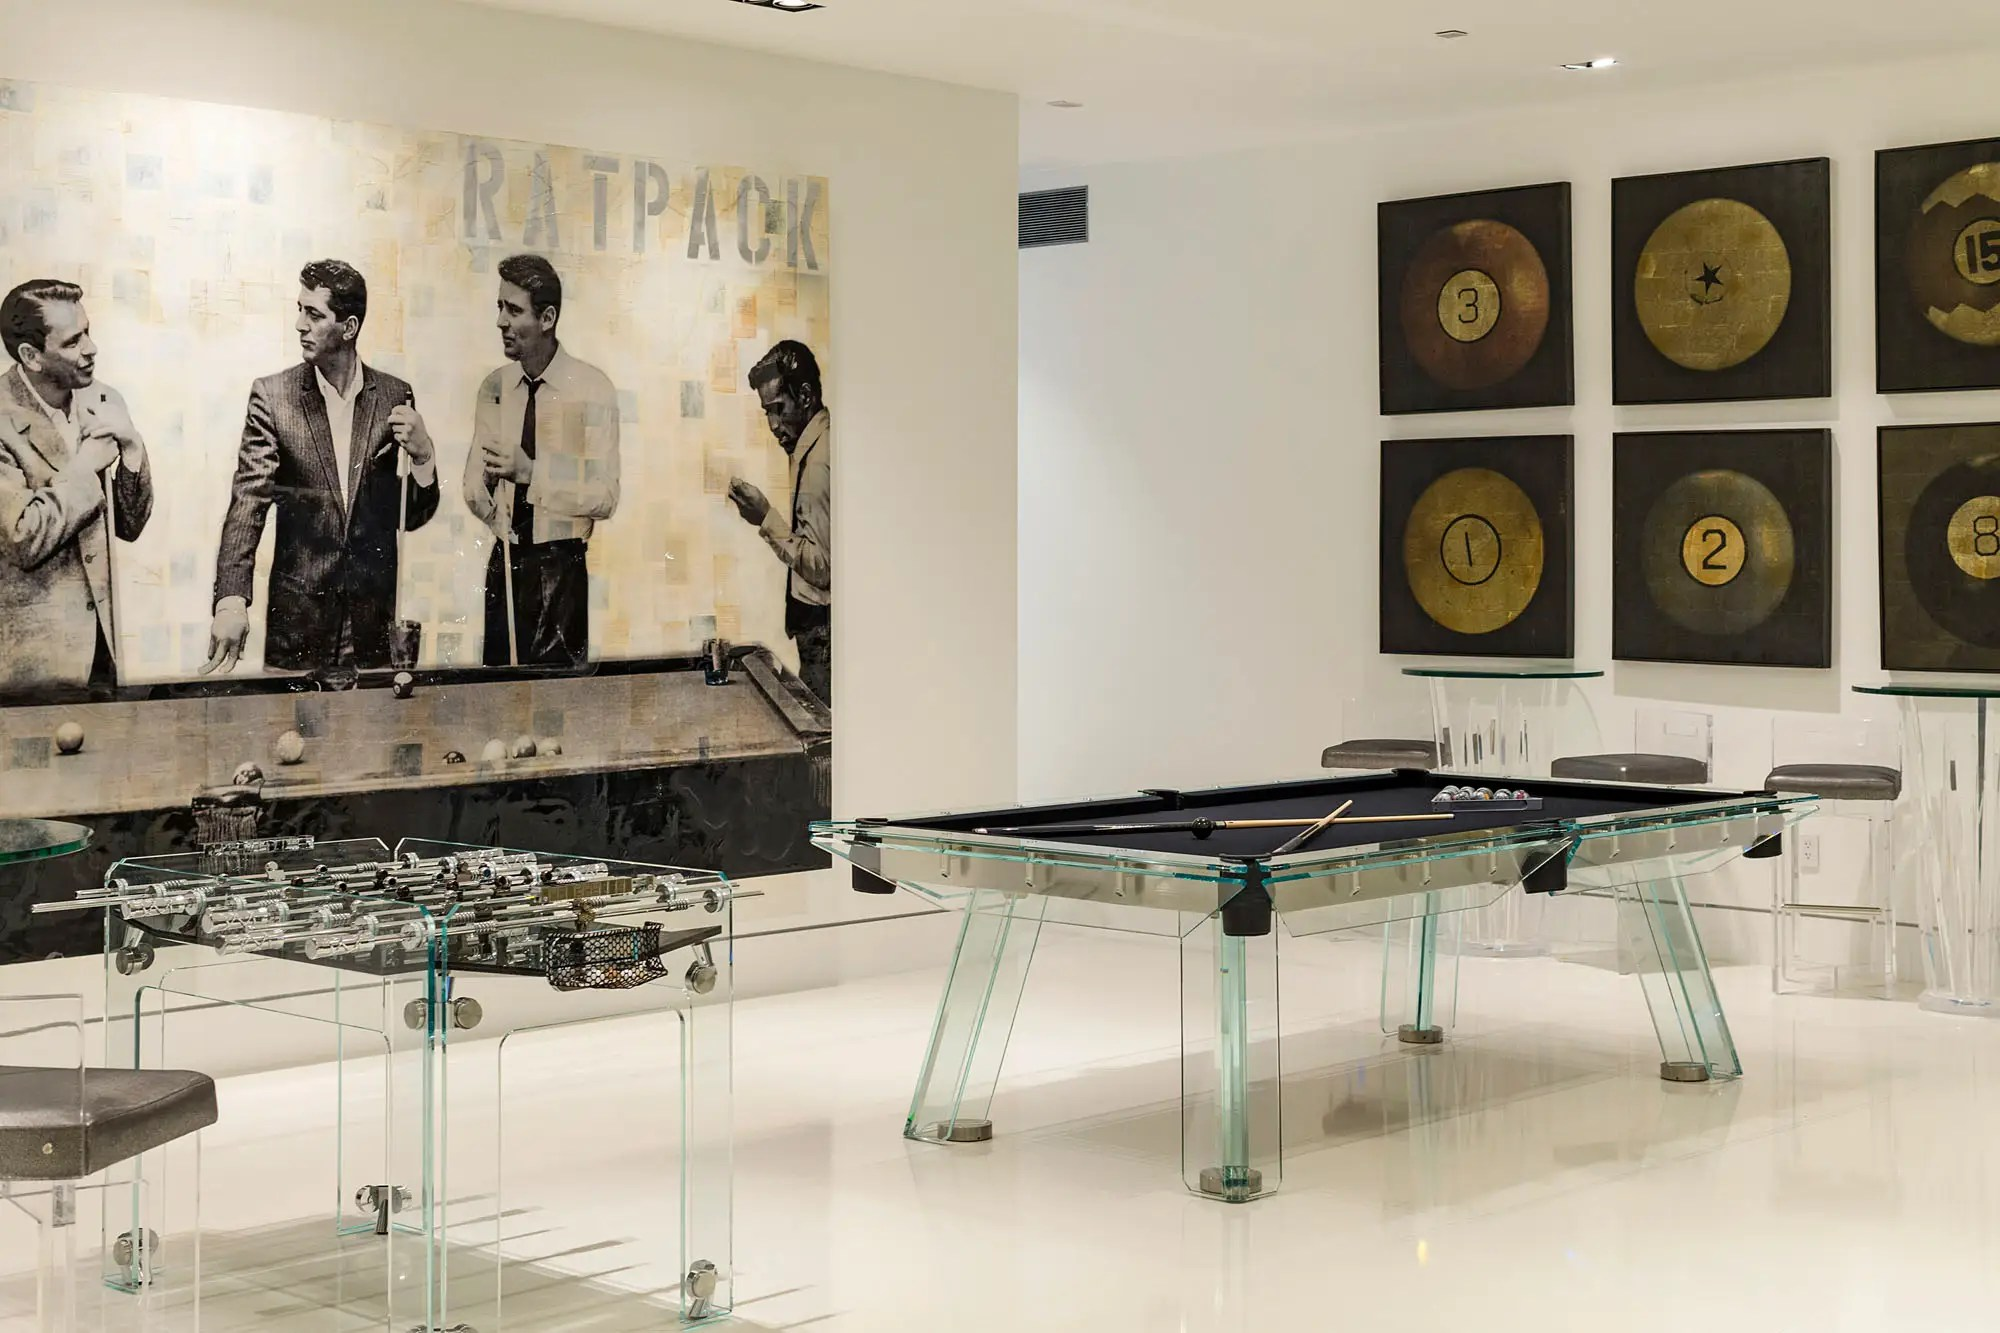 It's a haven for game lovers, with a pool table and foosball.